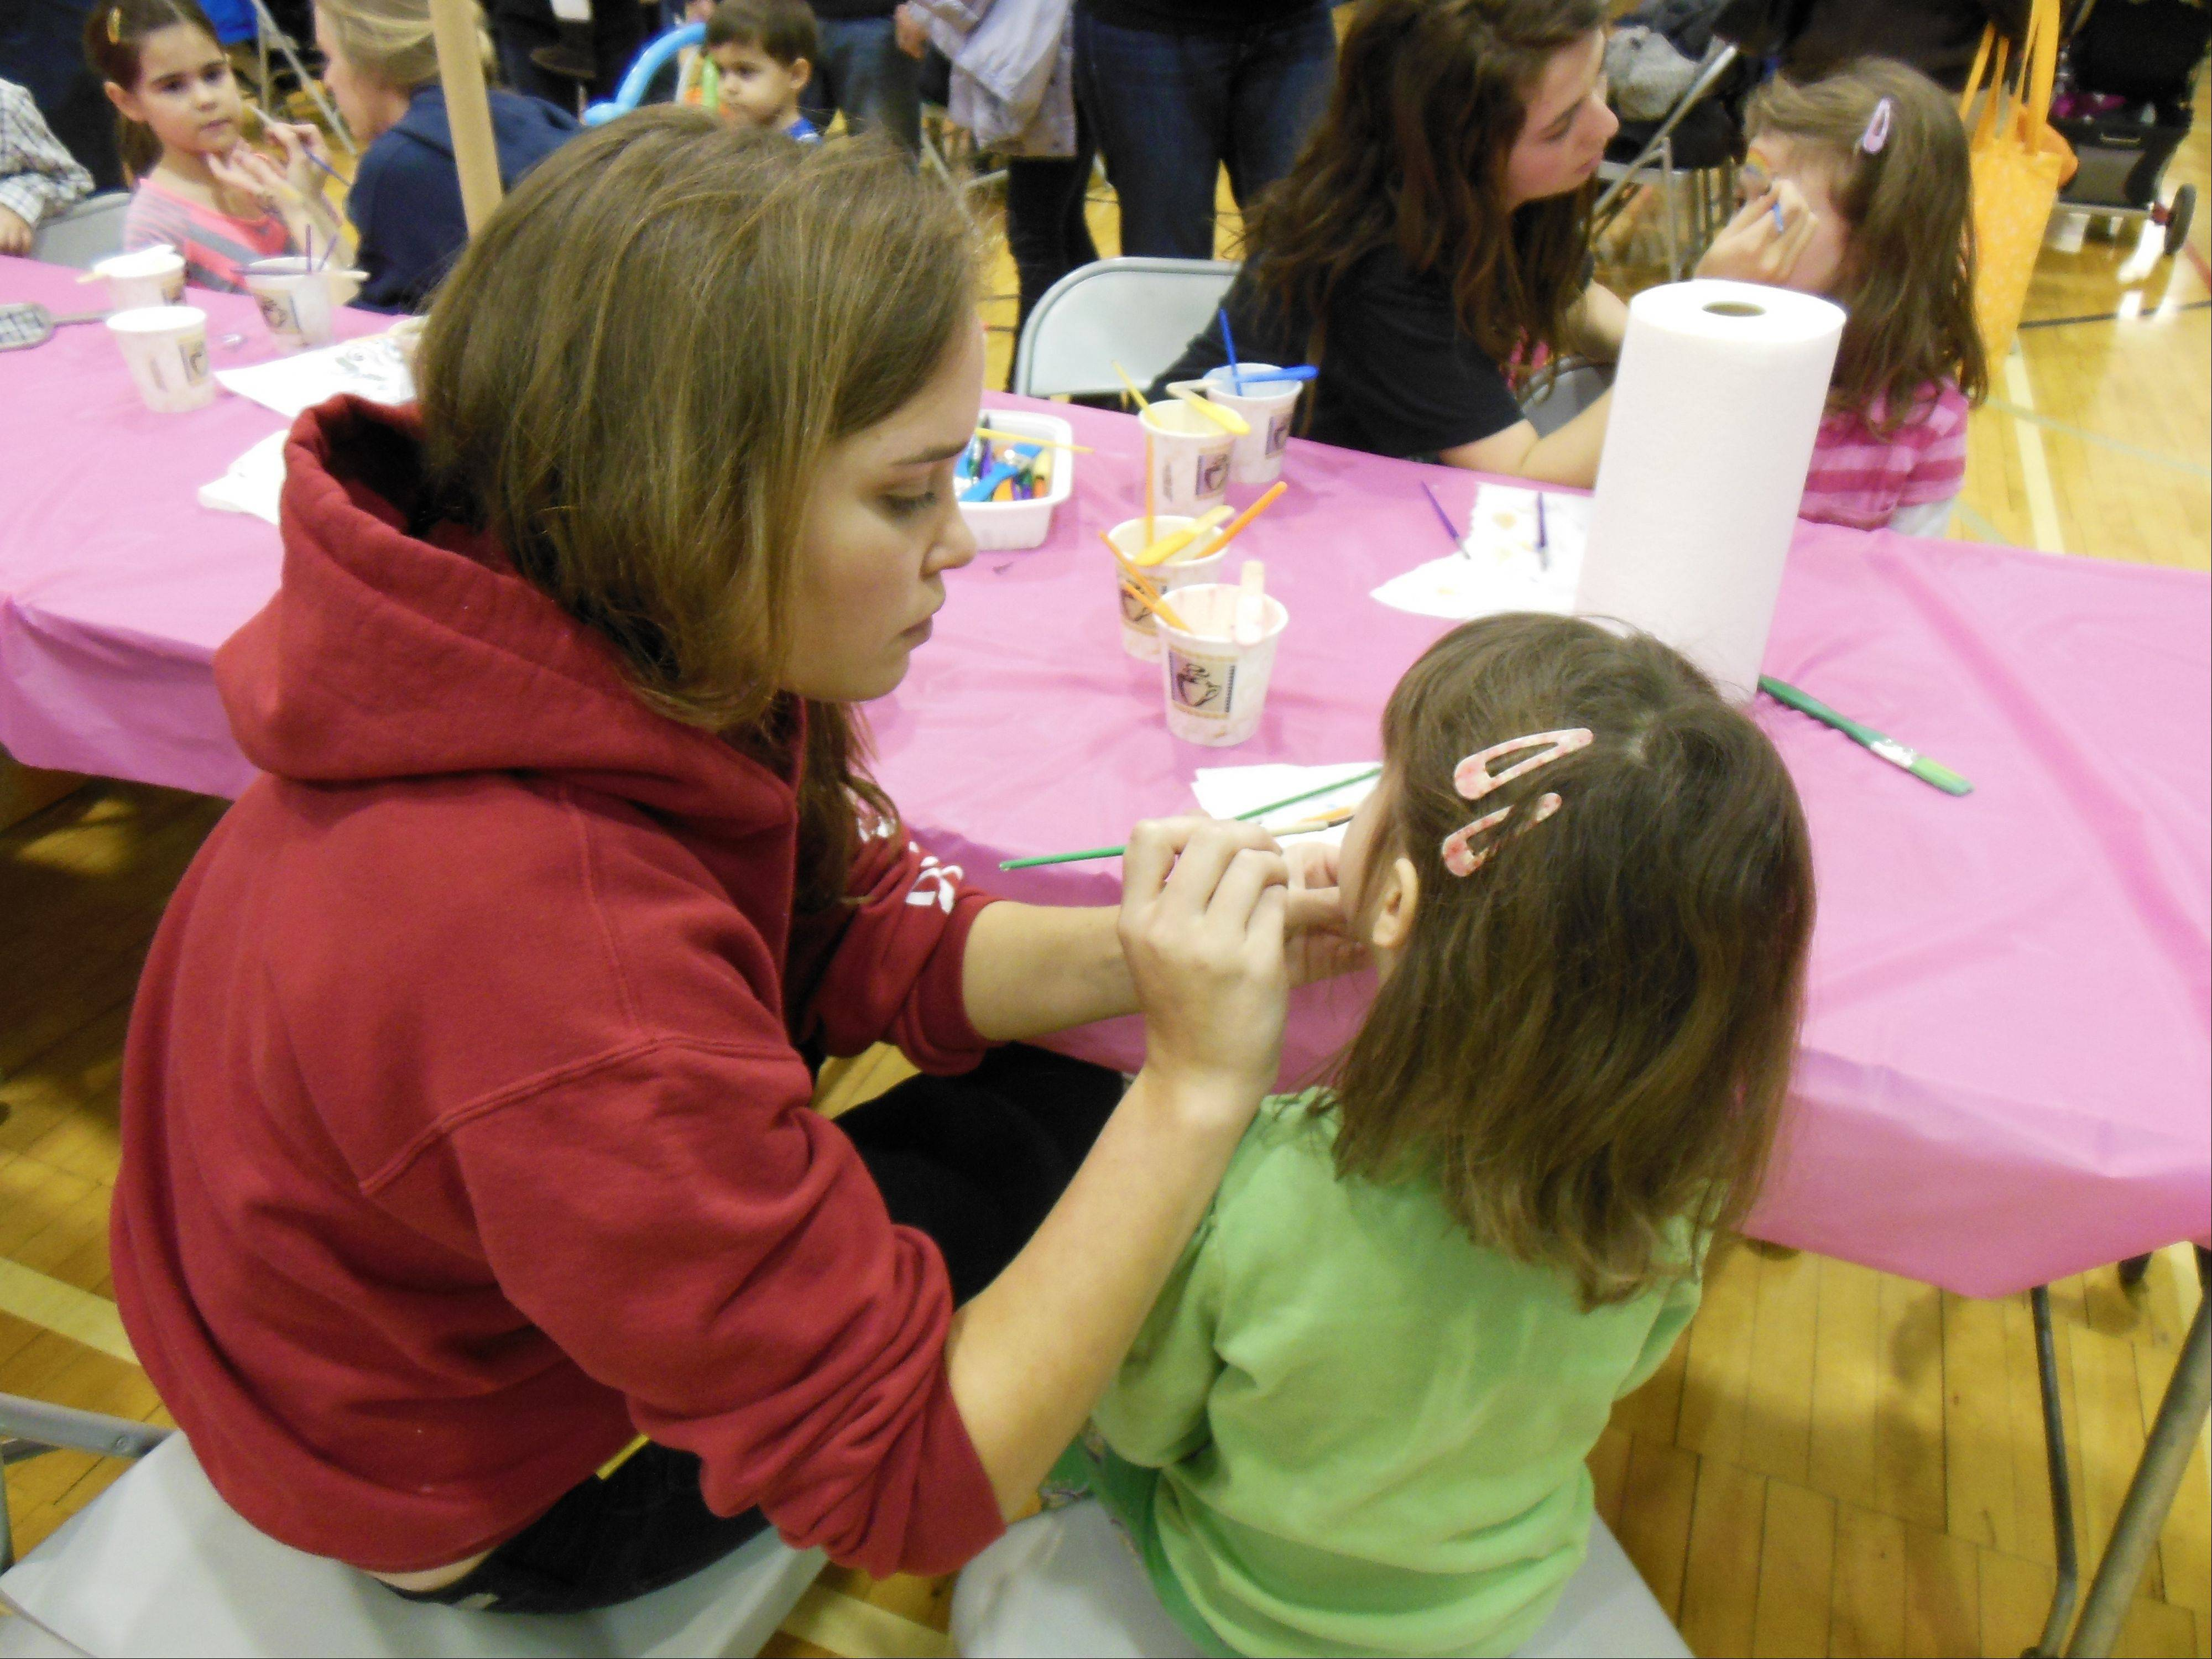 Junior Cathryn Rooney of Palatine decorates a child's face at the St. Viator Easter egg hunt, hosted by student council members, on March 17.